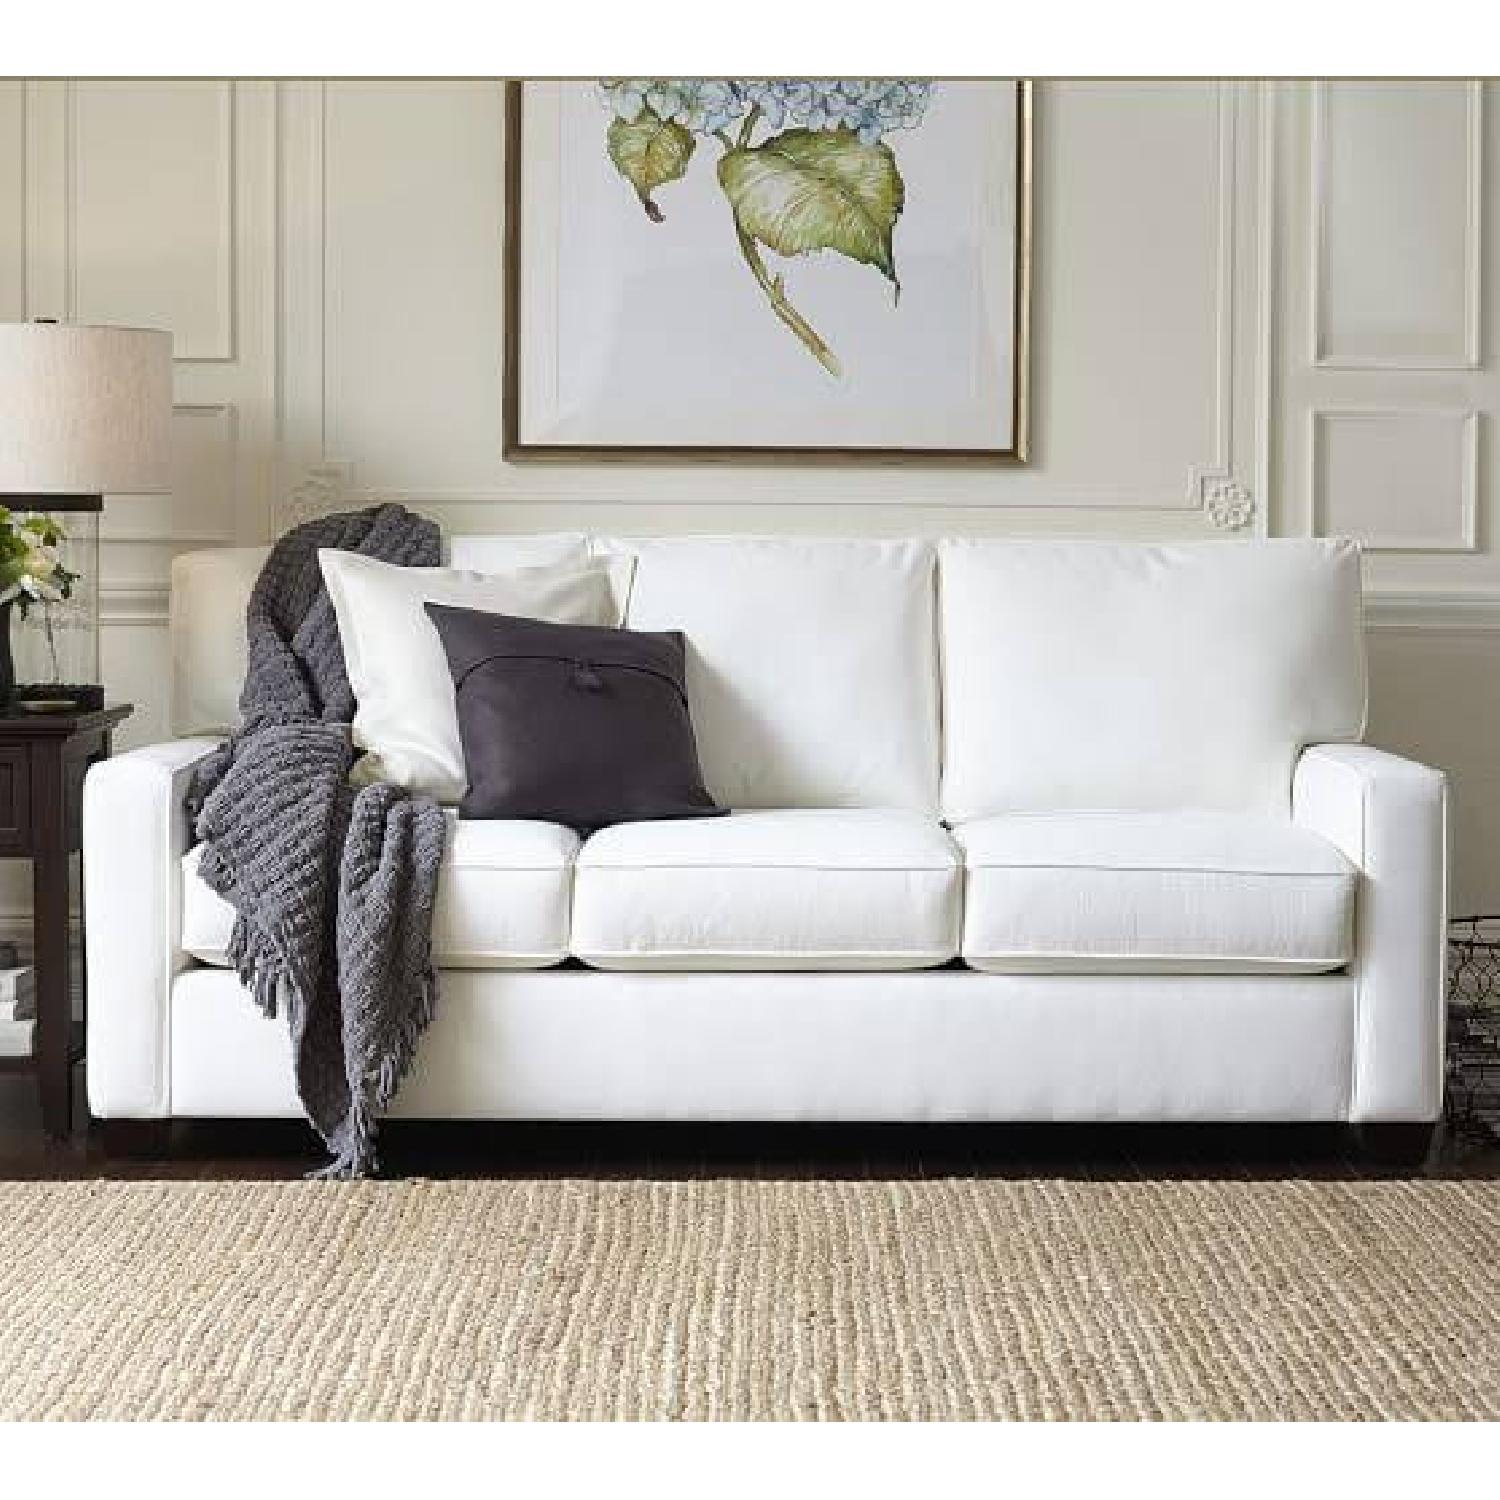 Pottery Barn Buchanan Square Arm Upholstered Couch - image-4